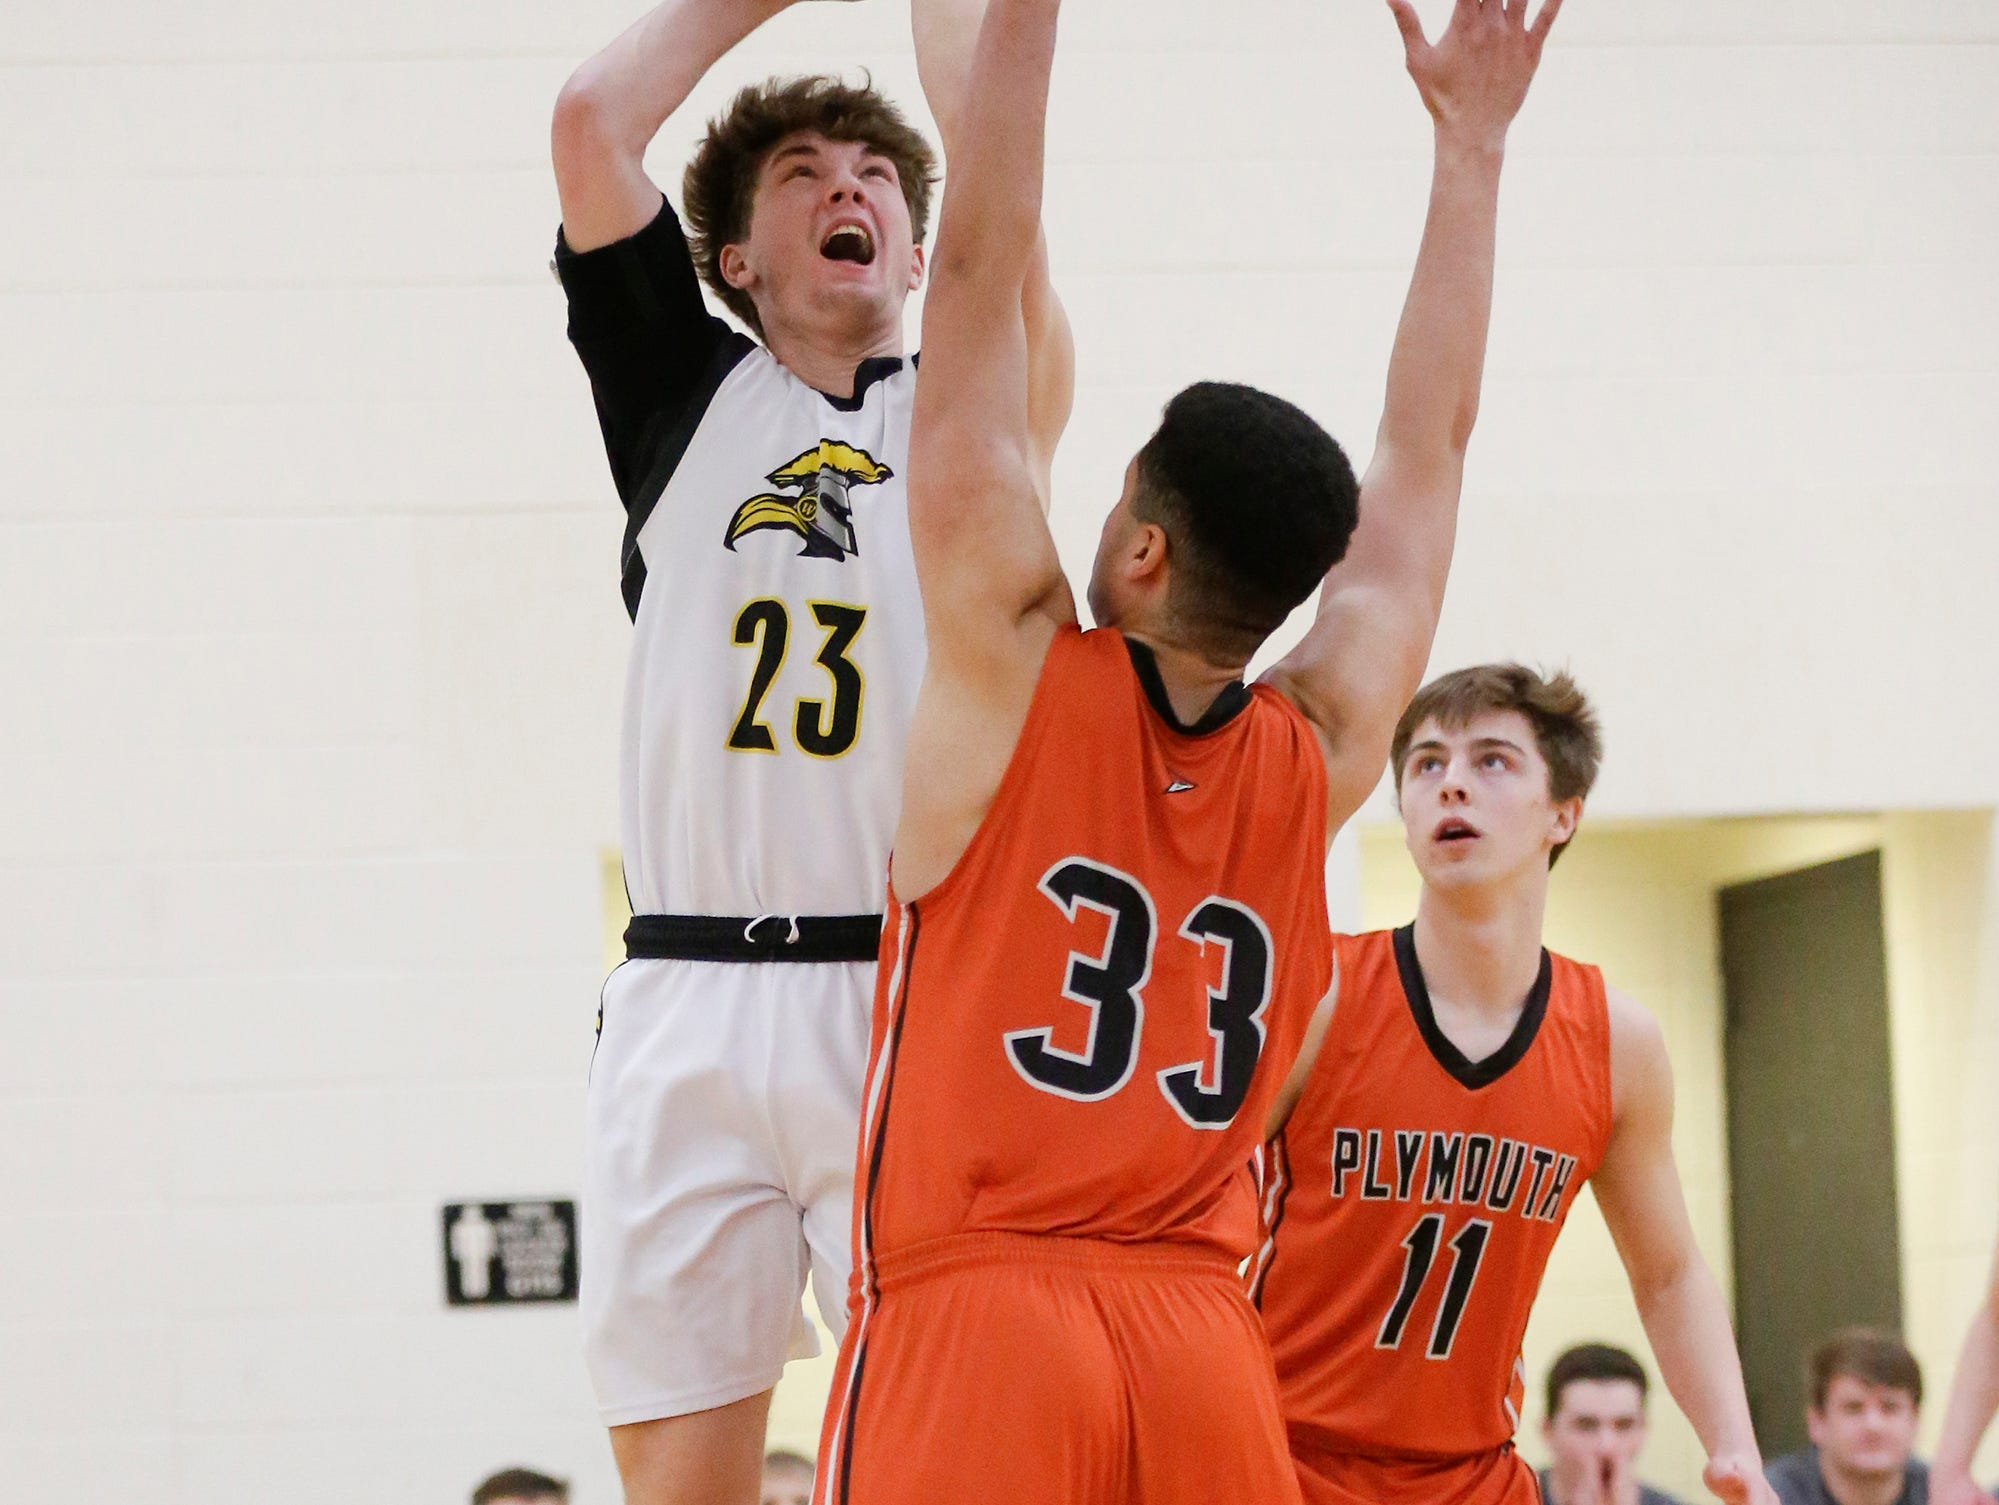 Waupun High School boys basketball's Reece Homan (23) goes up for a basket over Plymouth High School's Nick Falls (33) during their game Friday, February 15, 2019 in Waupun. Doug Raflik/USA TODAY NETWORK-Wisconsin